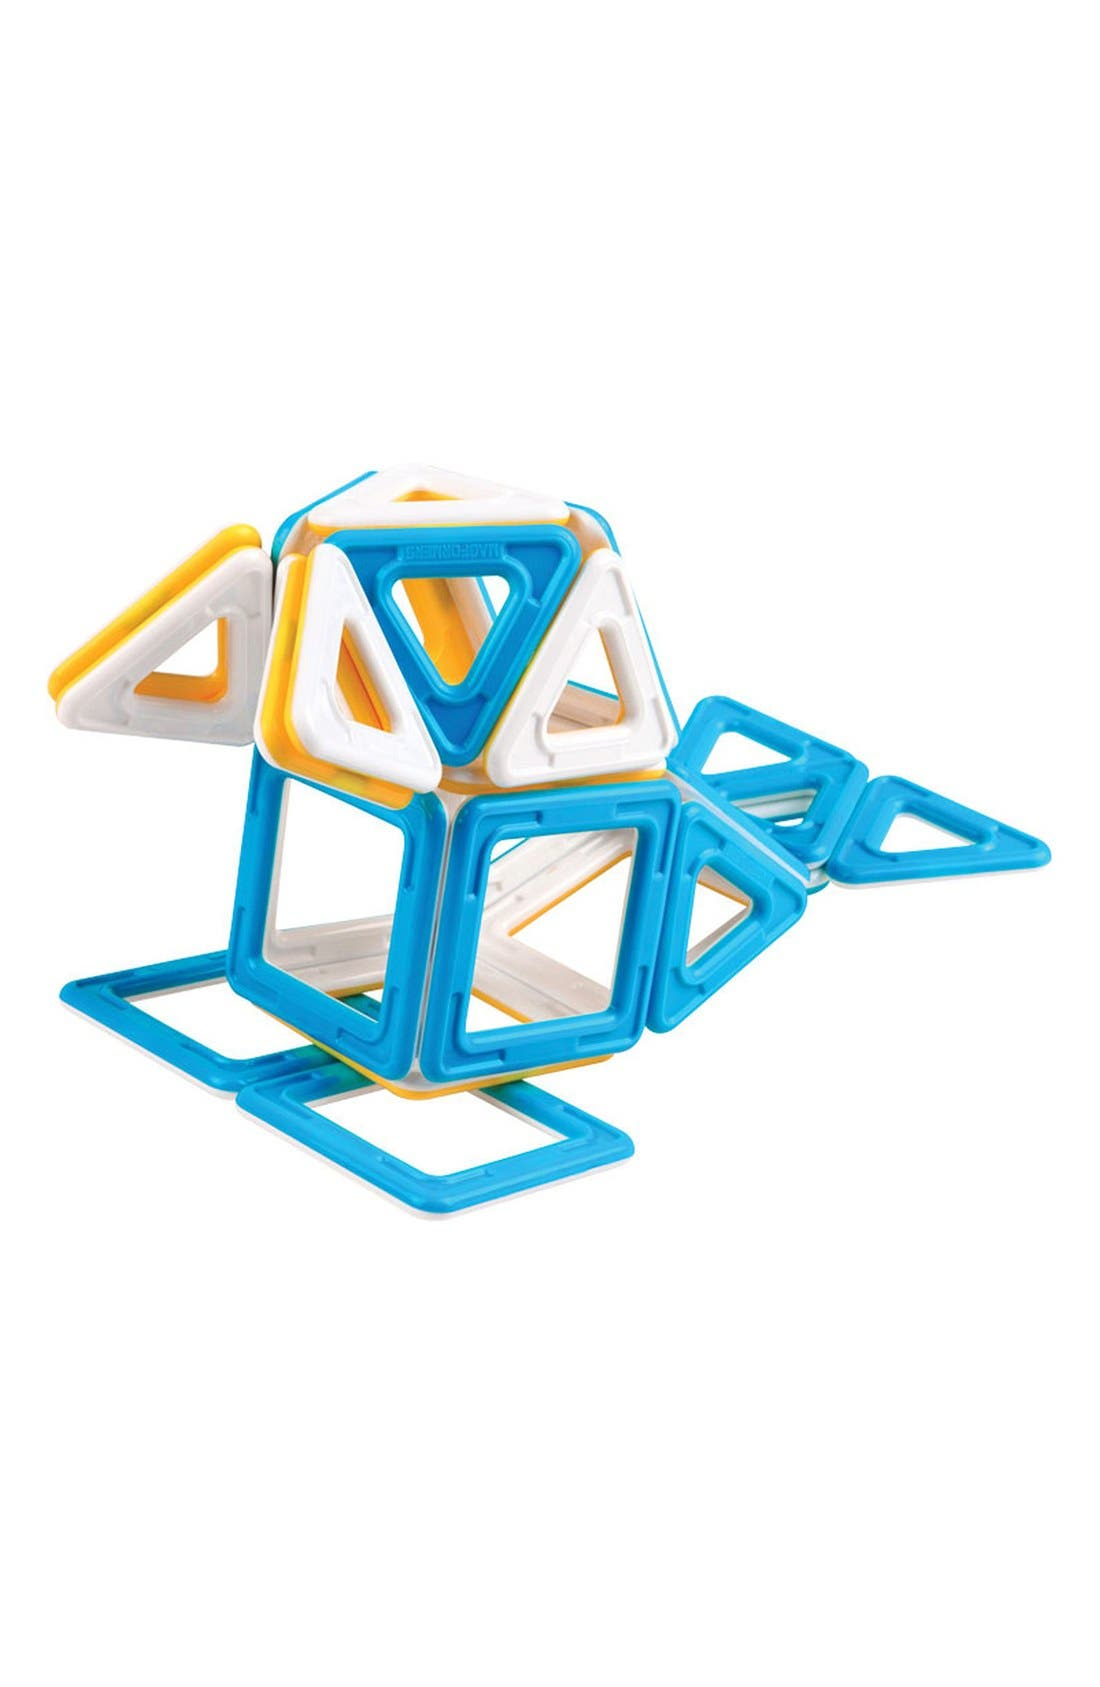 'My First Ice World' Magnetic 3D Construction Set,                             Alternate thumbnail 2, color,                             Blue/ Yellow/ White